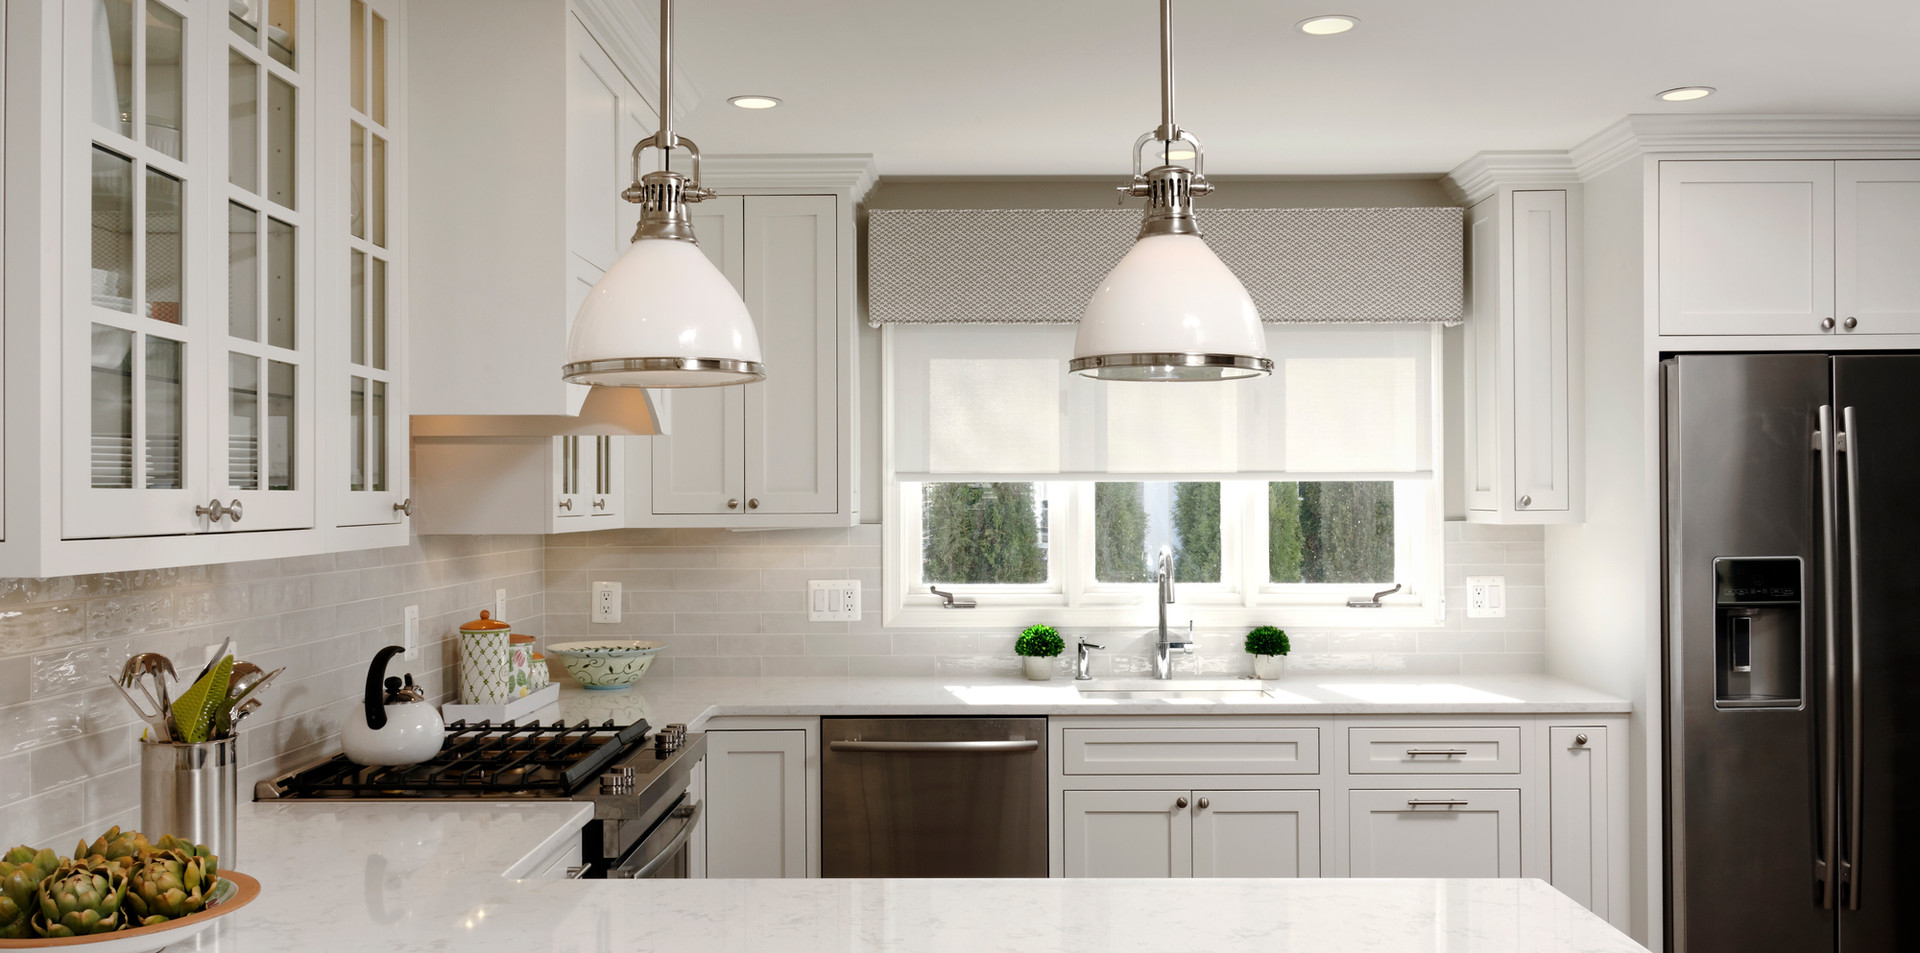 Modern Kitchen with Glass Cabinetry and Pendant Lights